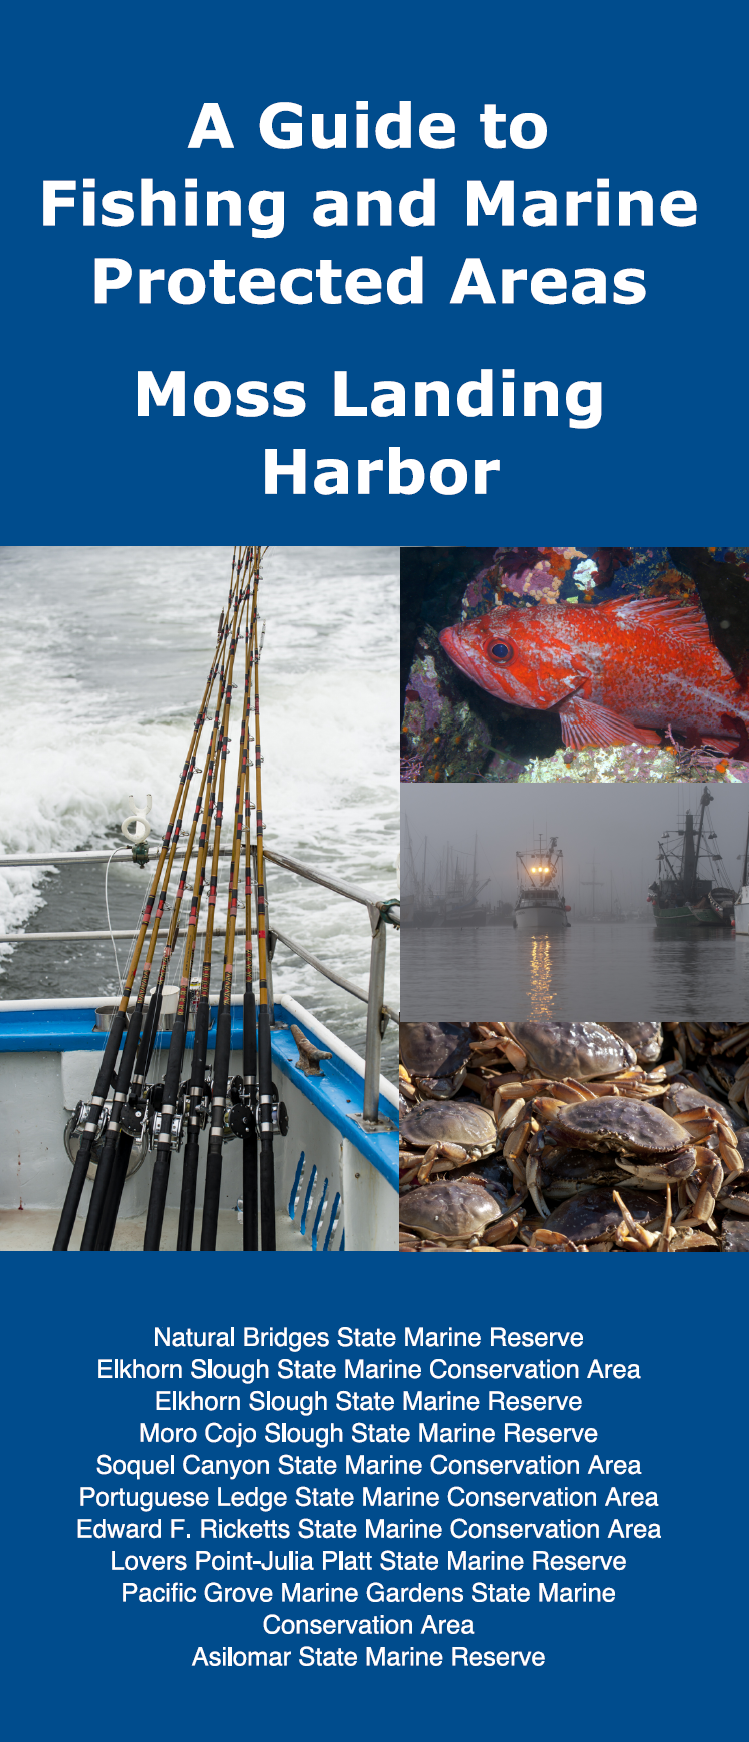 Fishing and MPAs Guide: Moss Landing Harbor